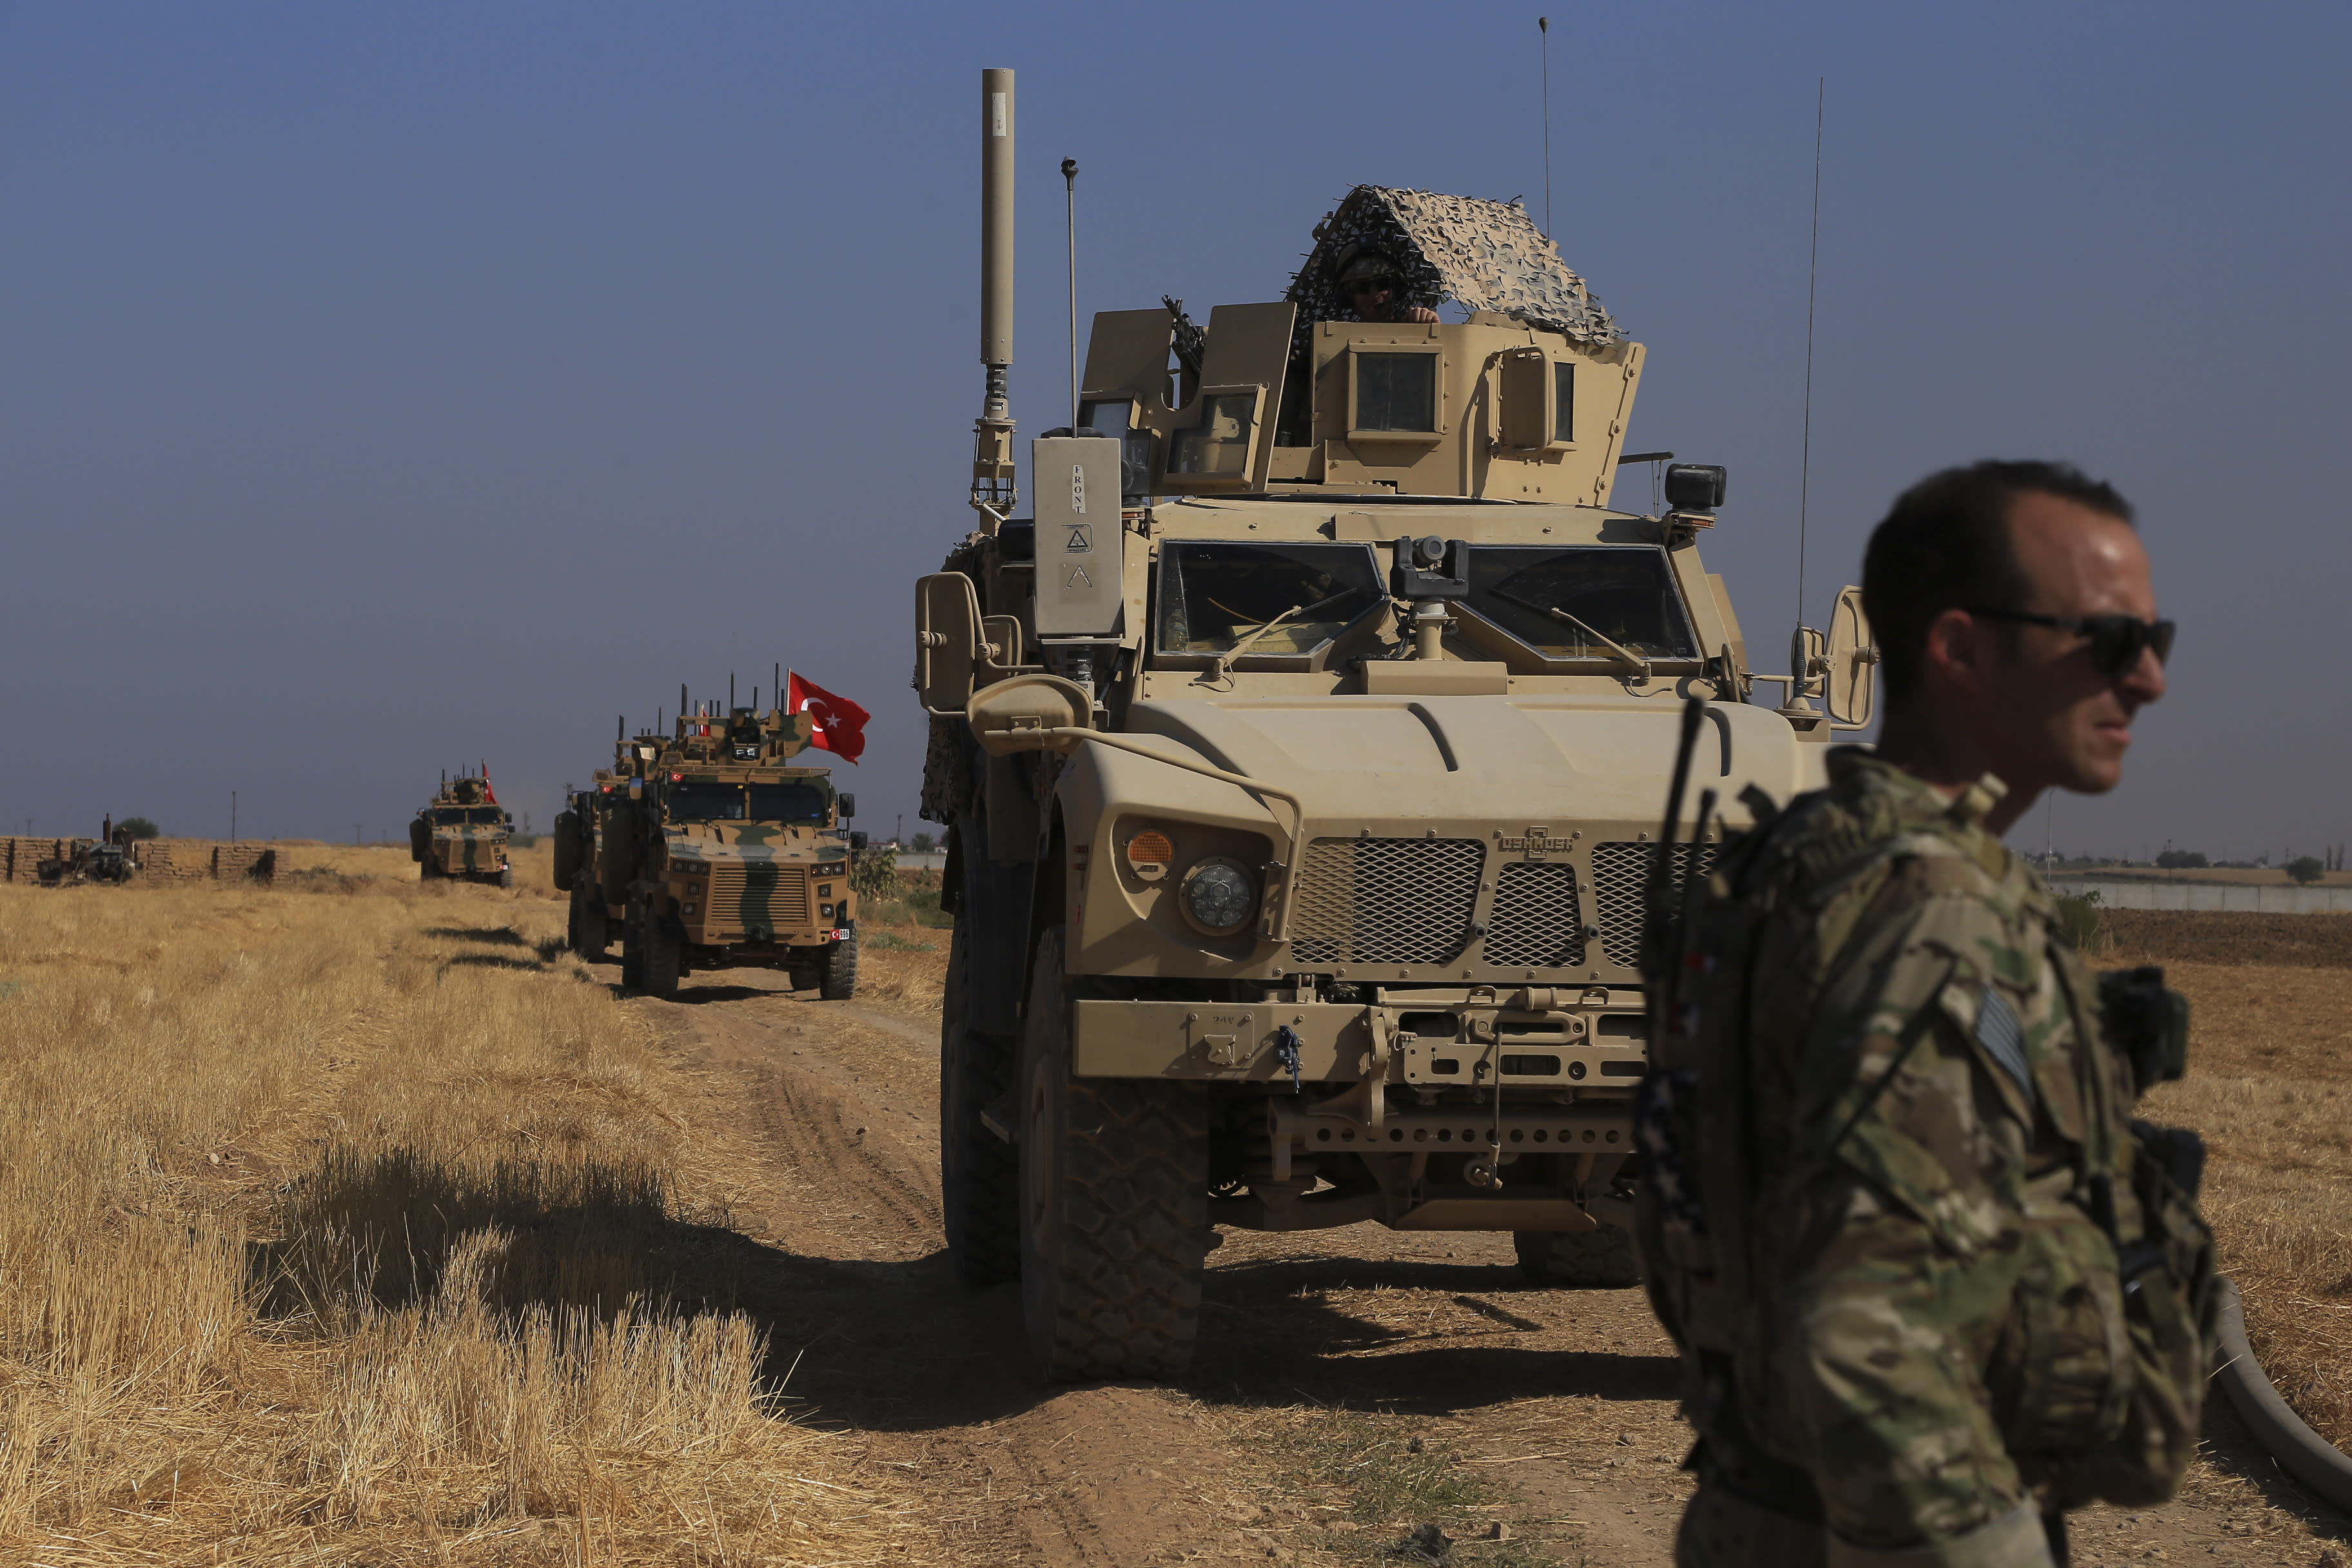 """Turkish and American armored vehicles patrol as they conduct joint ground patrol in the so-called """"safe zone"""" on the Syrian side of the border with Turkey, near the town of Tal Abyad, northeastern Syria, Friday, Oct.4, 2019. The patrols are part of a deal reached between Turkey and the United States to ease tensions between the allies over the presence of U.S.-backed Syrian Kurdish fighters in the area. (AP Photo/Baderkhan Ahmad)"""